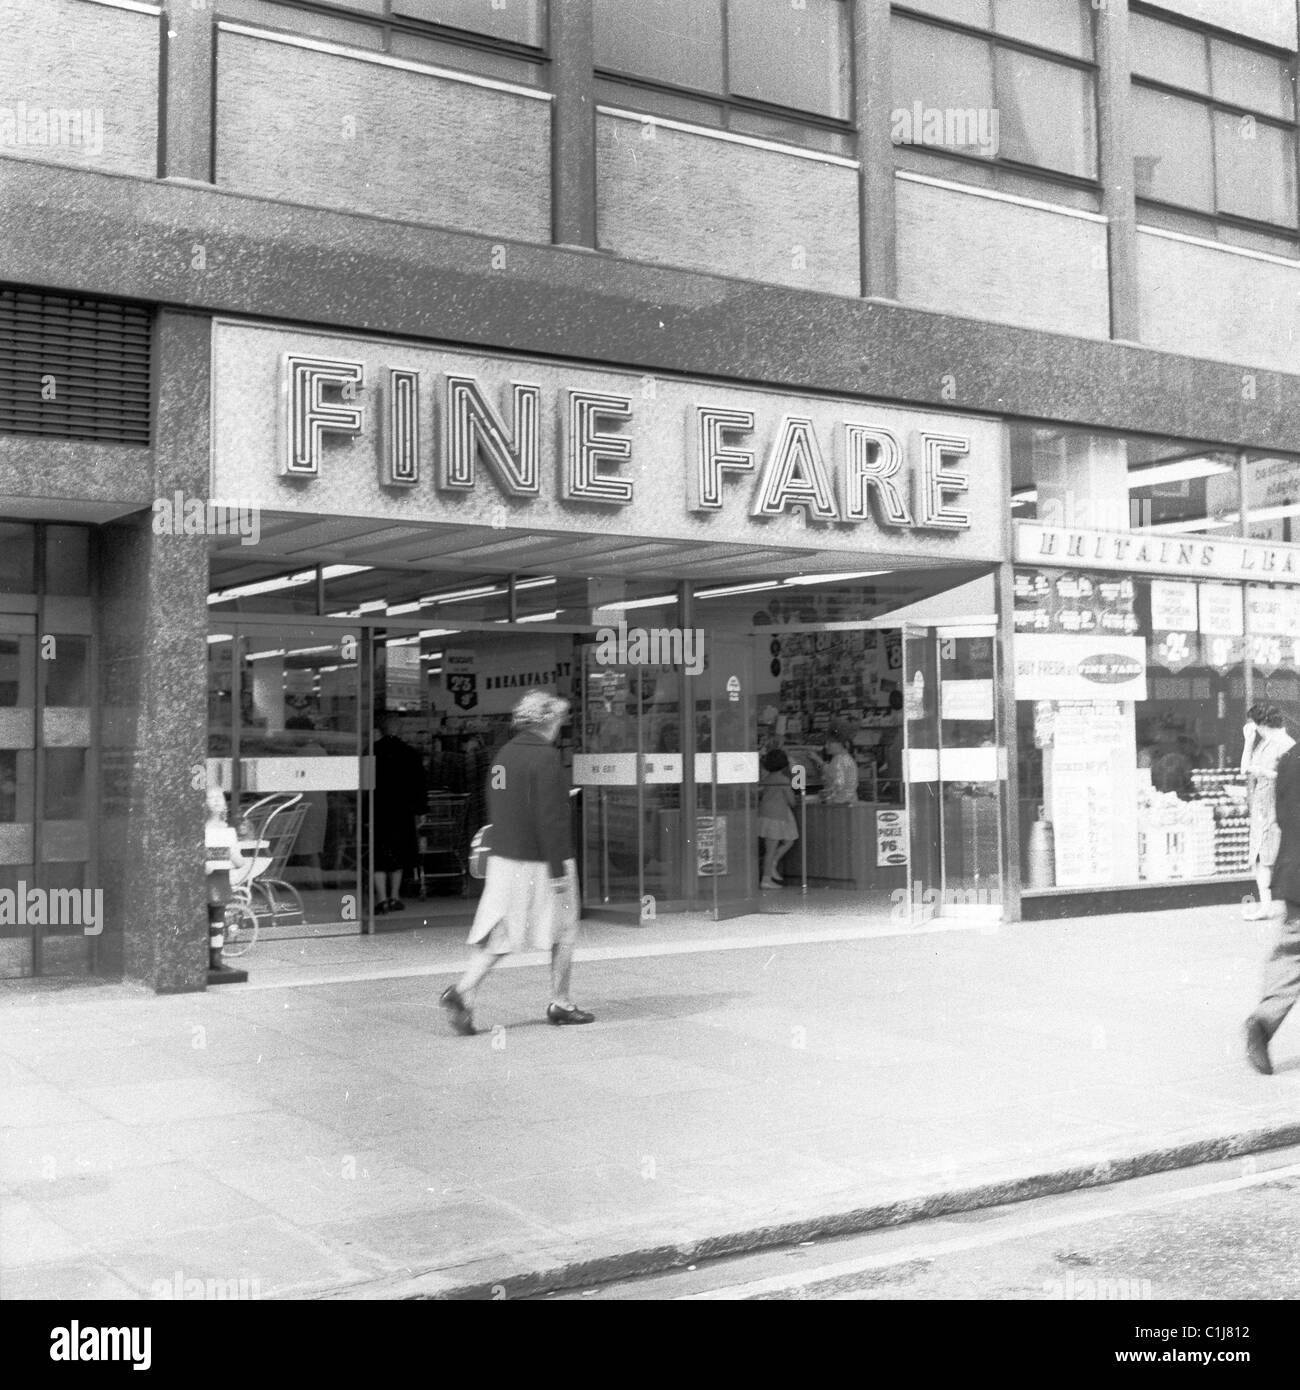 1960s, London, exterior of a Fine Fare self-service supermarket, one of the first such stores that were opening - Stock Image